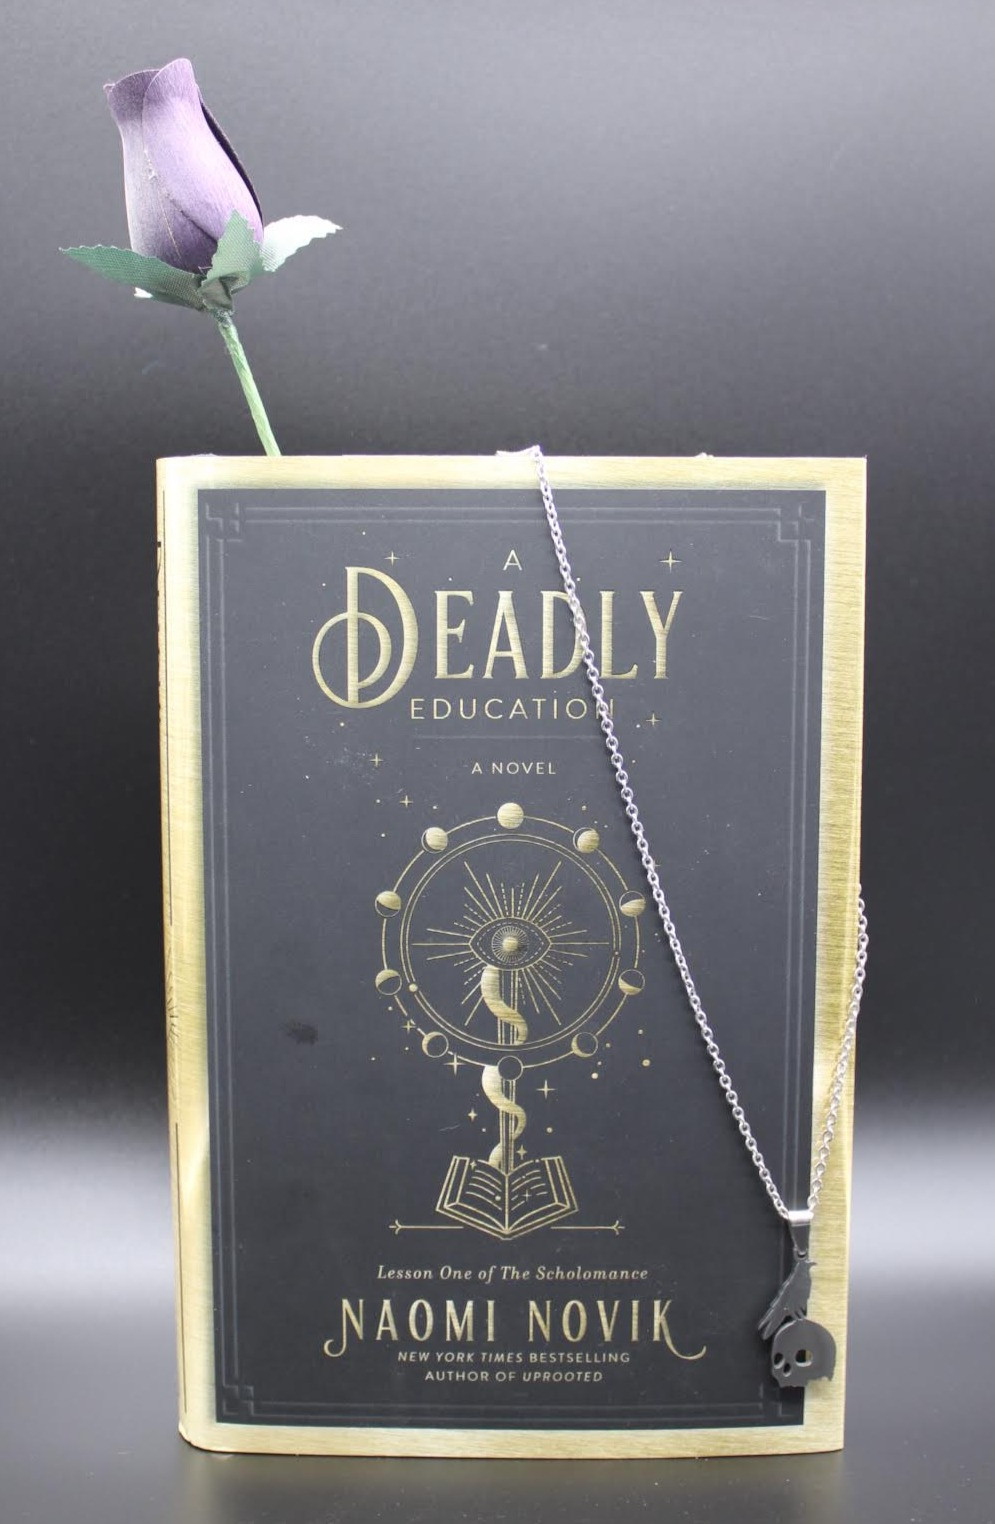 The book A Deadly Education by Naomi Novik stands in front of black backdrop with a purple rose sticking out of the top of the book and a silver chain drooped on the right side.